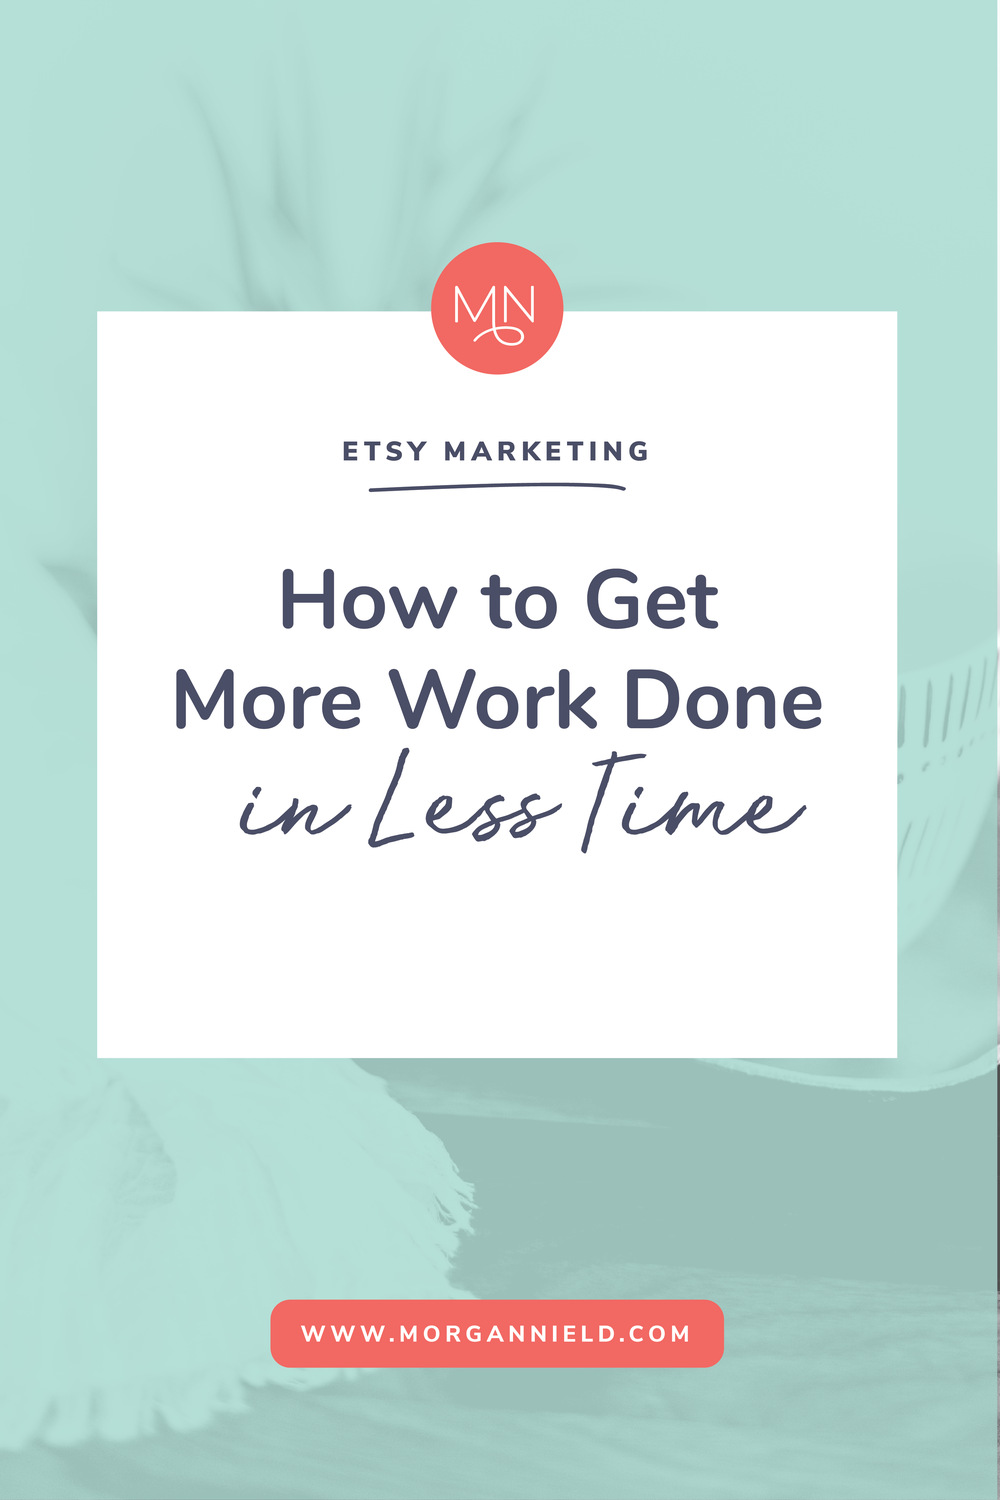 Let's face it-- as much as you'd like to, you just don't have the time to spend 12 hours/day working on your Etsy shop. And guess what? You shouldn't have to! Inside this blog post I'm going to share my #1 tip for time-management and getting more things done with your small biz-- in less time! Click through to read more >>